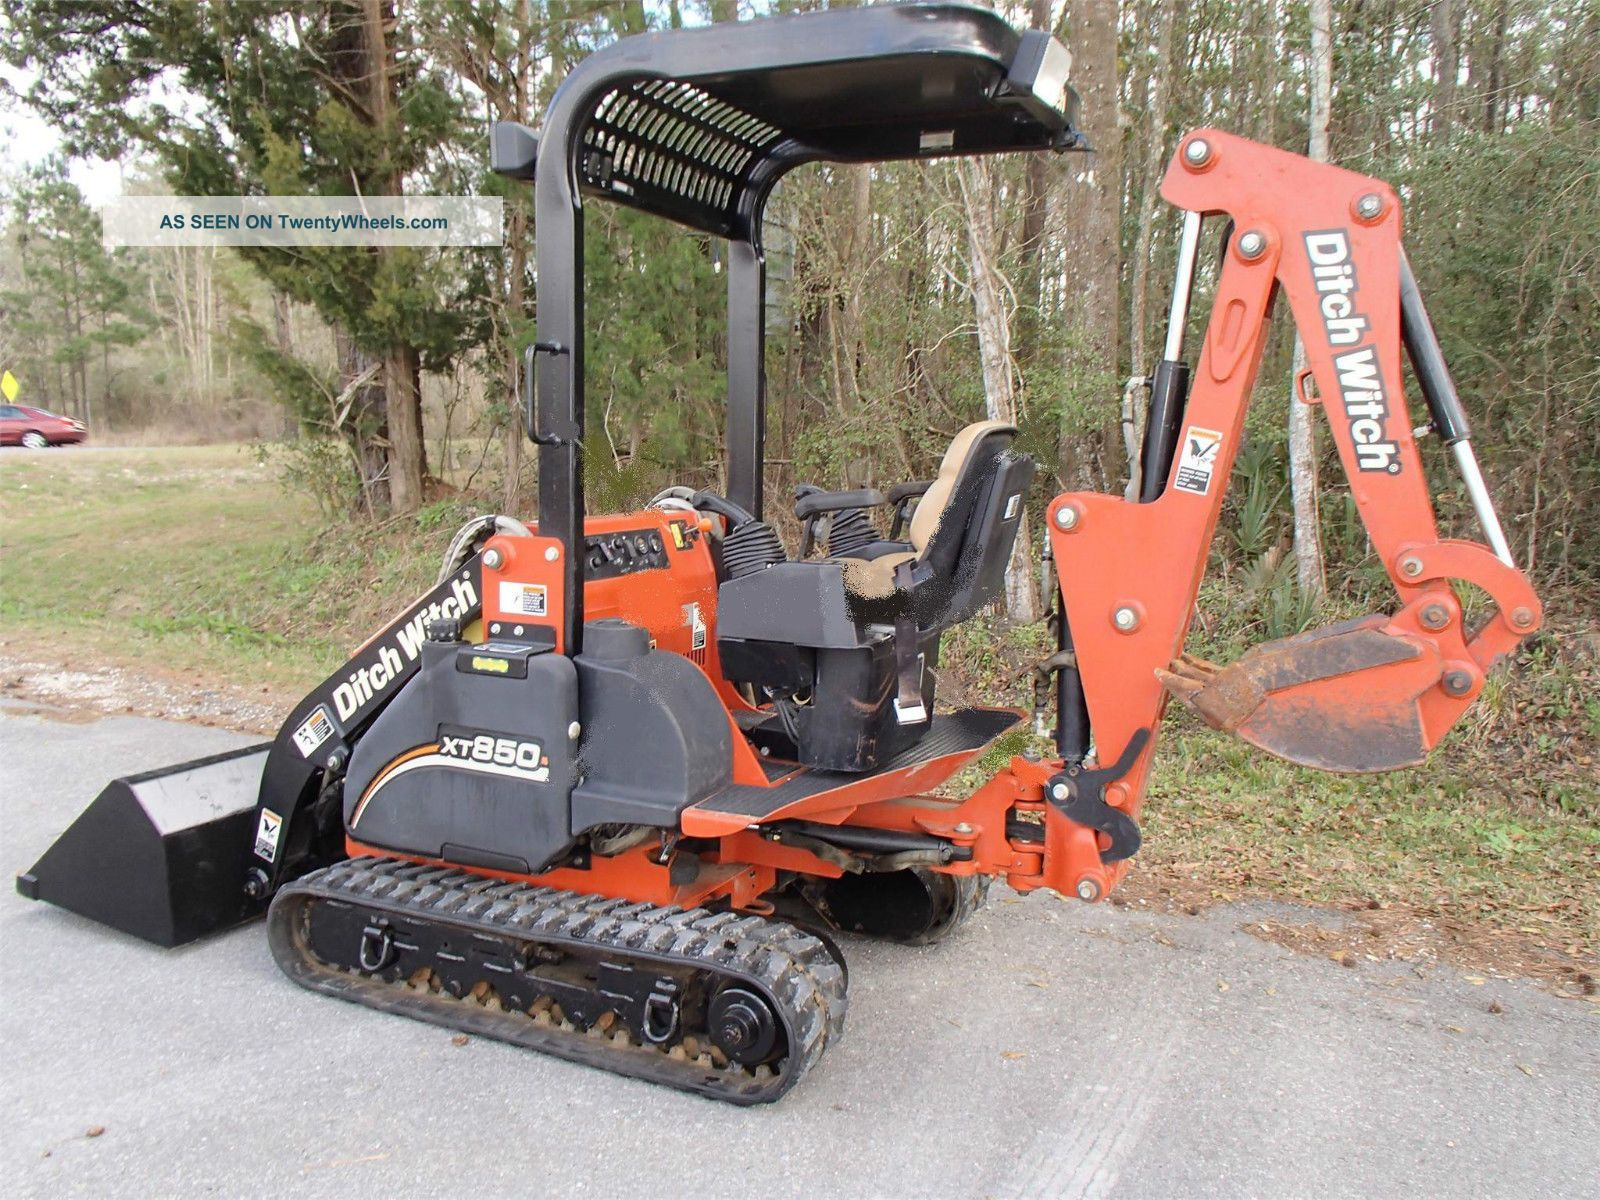 ditch_witch_xt850_mini_excavator__tool_carrier_skid_steer_plus_ten_attachments_1_lgw ditch witch track loader ditch free image about wiring diagram ditch witch xt850 wiring diagram at honlapkeszites.co